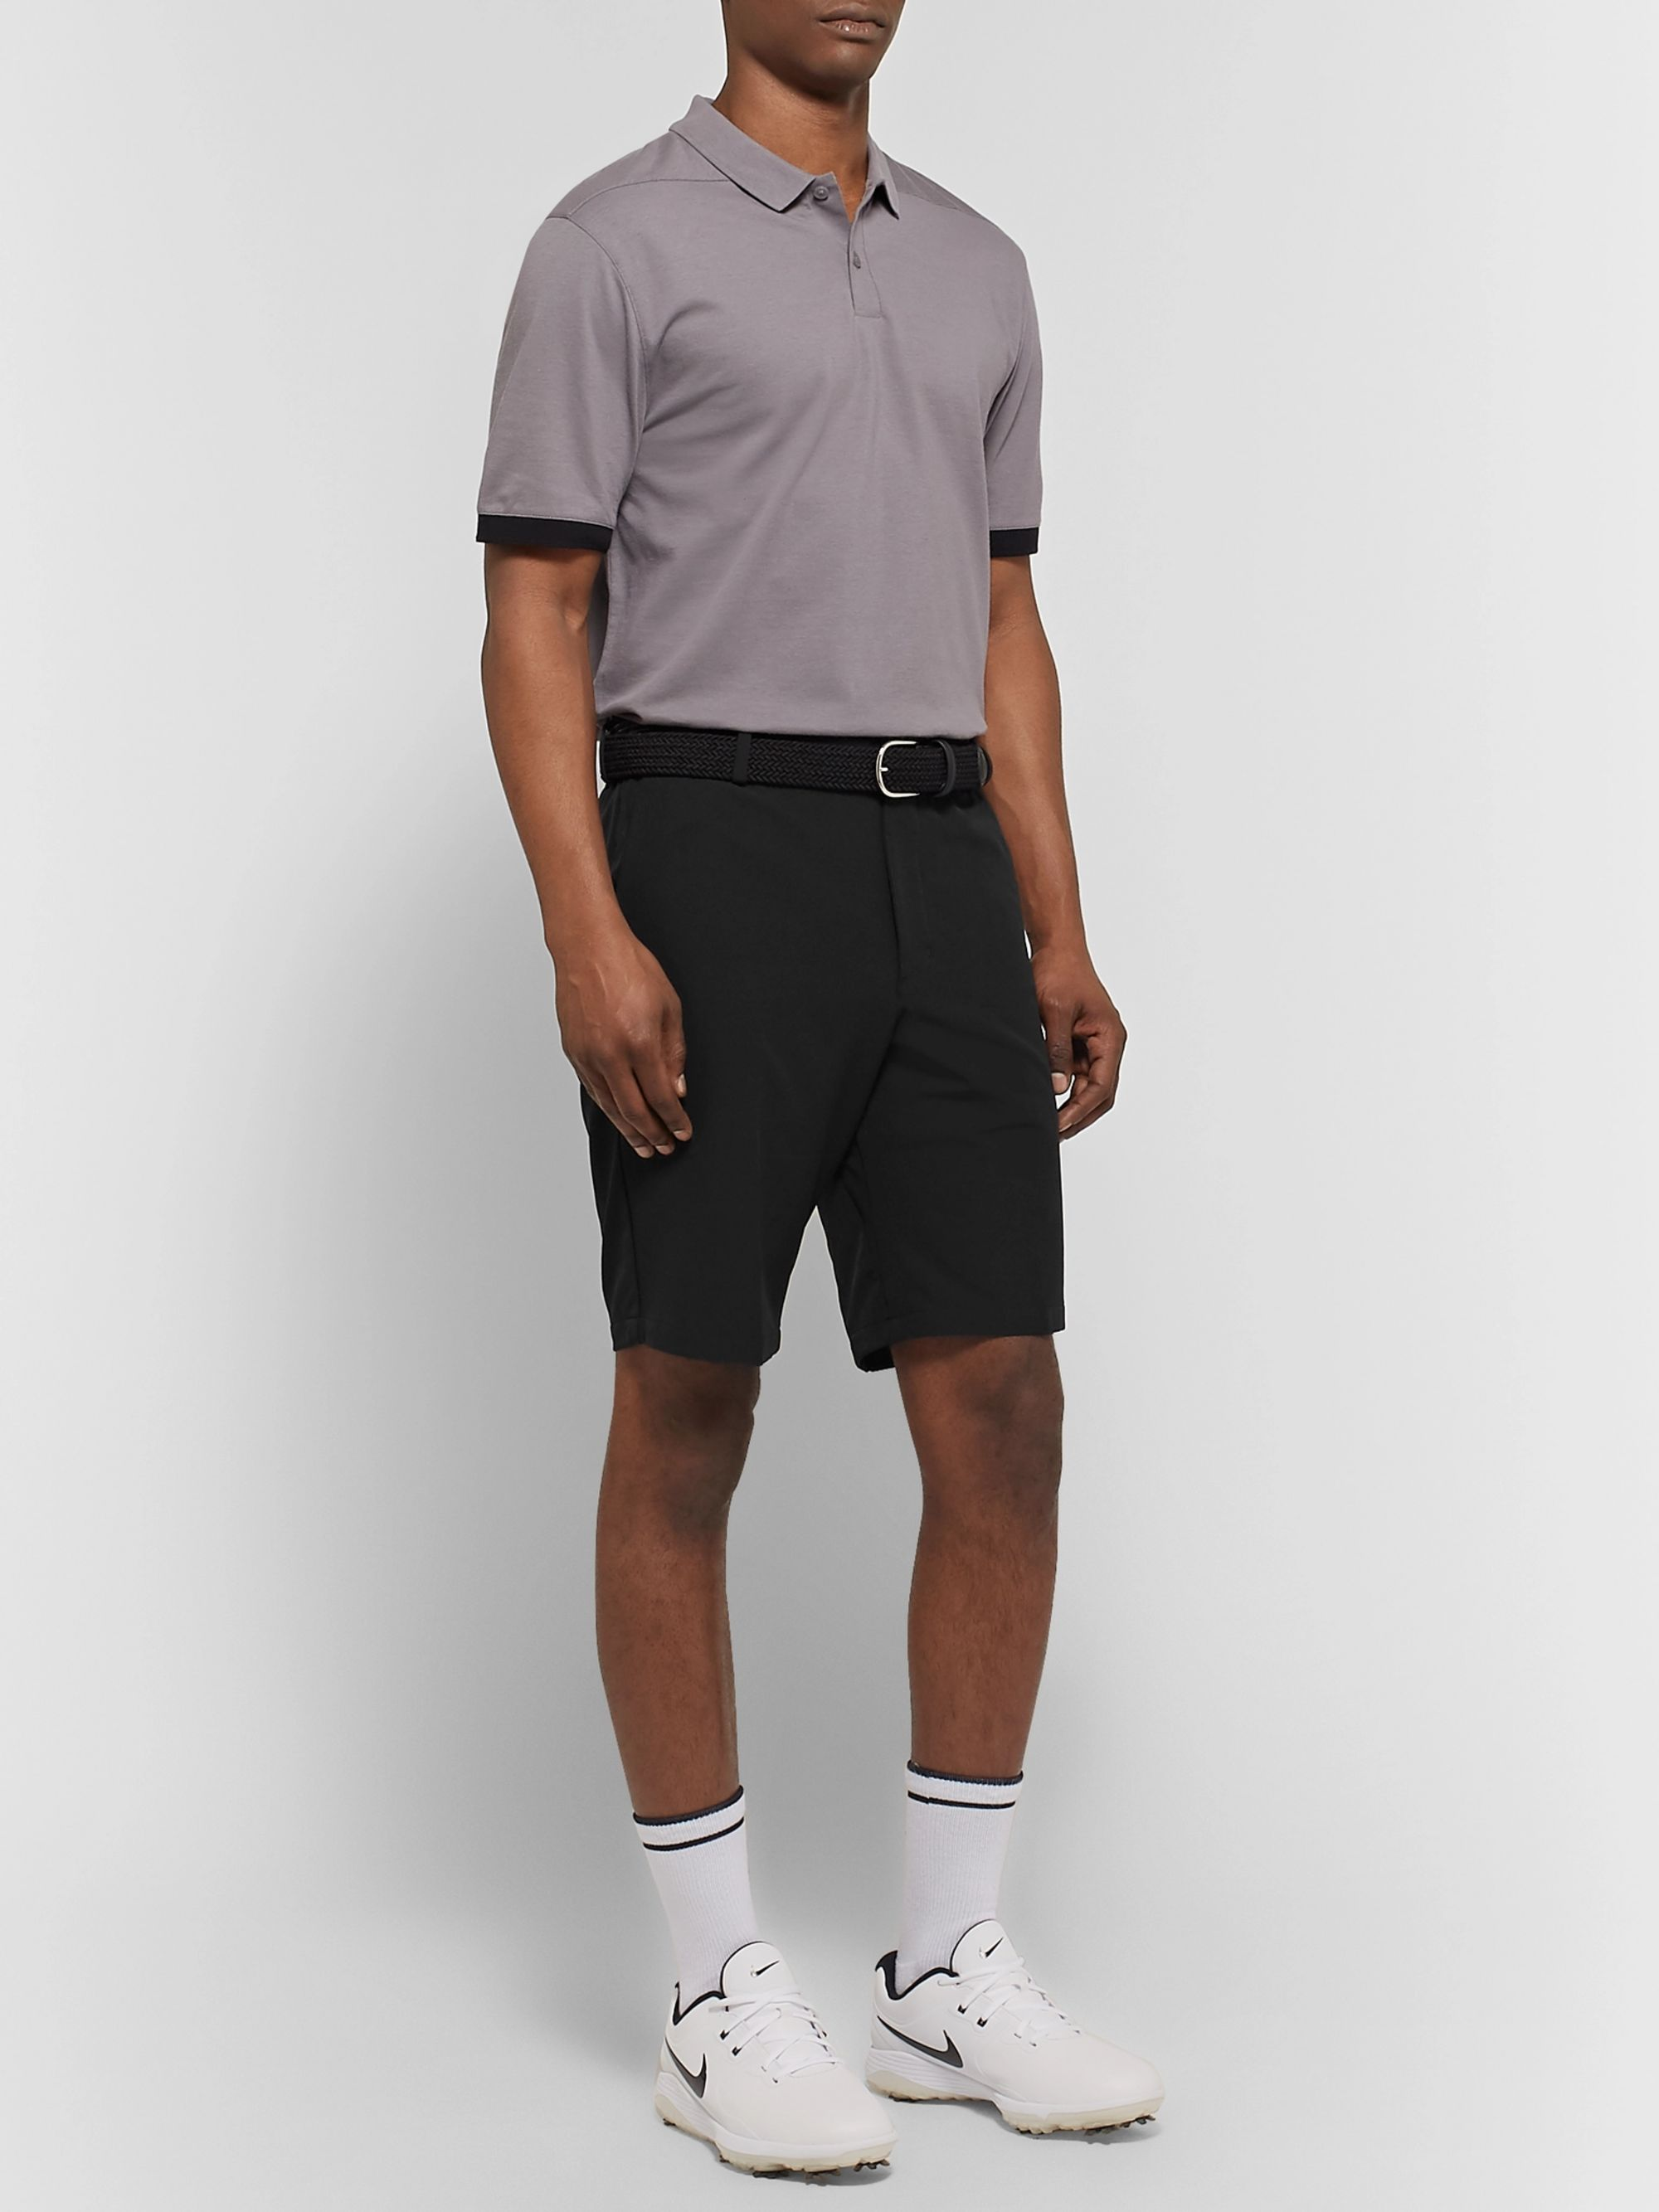 Nike Golf Flex Dri-FIT Golf Shorts